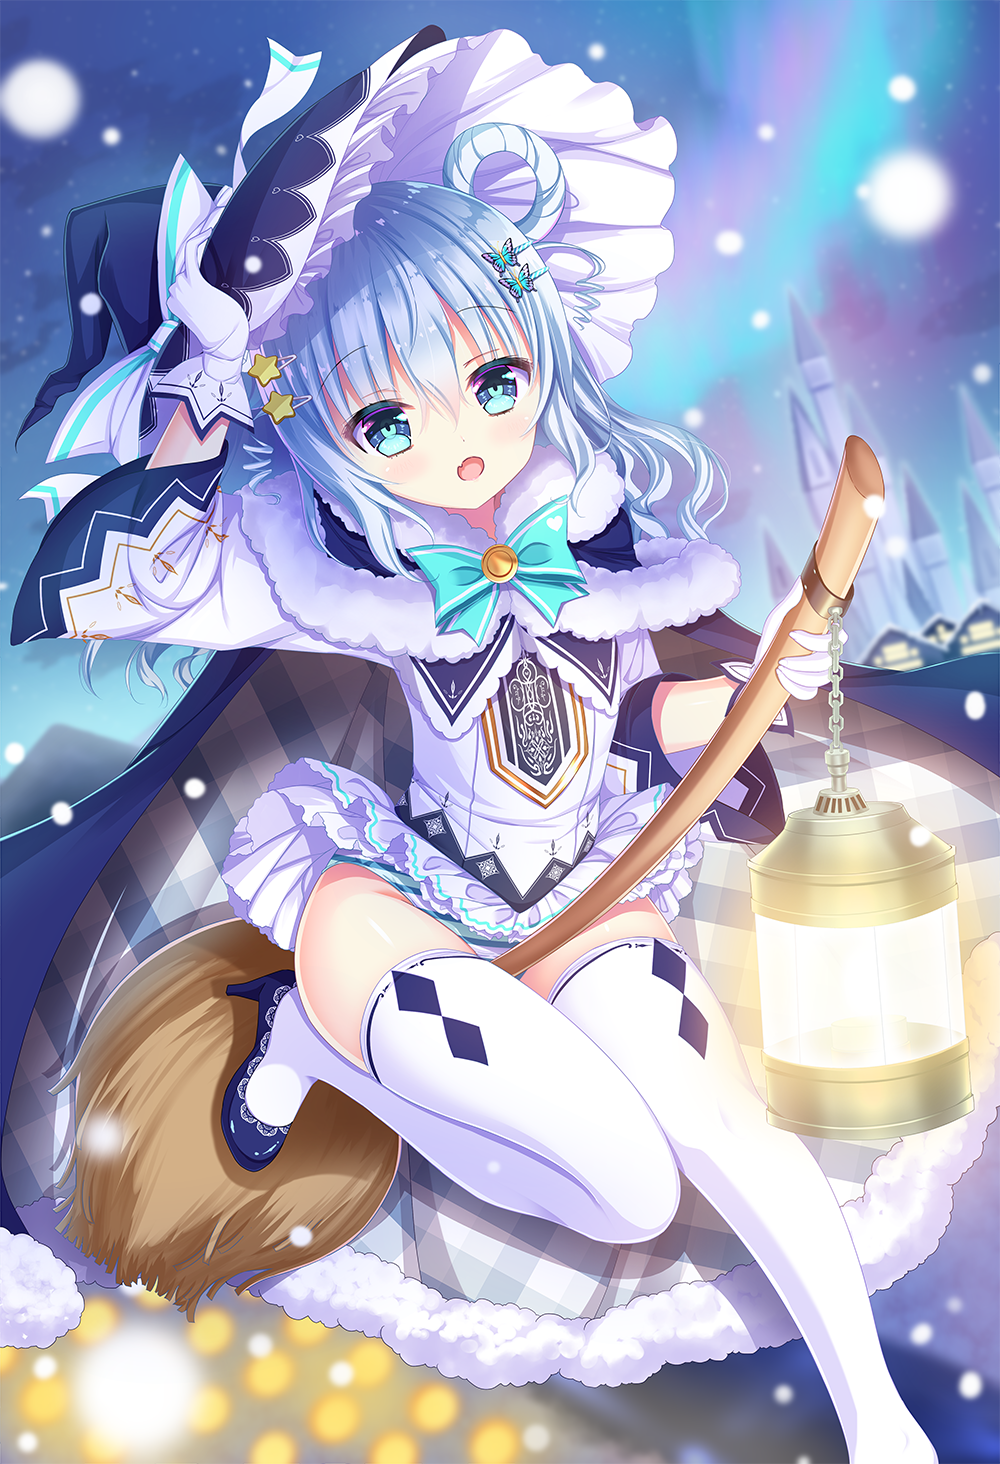 1girl arm_up black_capelet black_headwear blue_eyes blue_footwear blue_hair broom broom_riding butterfly_hair_ornament capelet commentary_request dress fang fur-trimmed_capelet fur_trim gloves hair_ornament hair_rings hairclip hand_on_headwear hat high_heels highres lantern long_hair long_sleeves open_mouth original panties shiwasu_horio shoes solo star_(symbol) star_hair_ornament striped striped_panties thigh-highs underwear white_dress white_gloves white_legwear wide_sleeves witch_hat